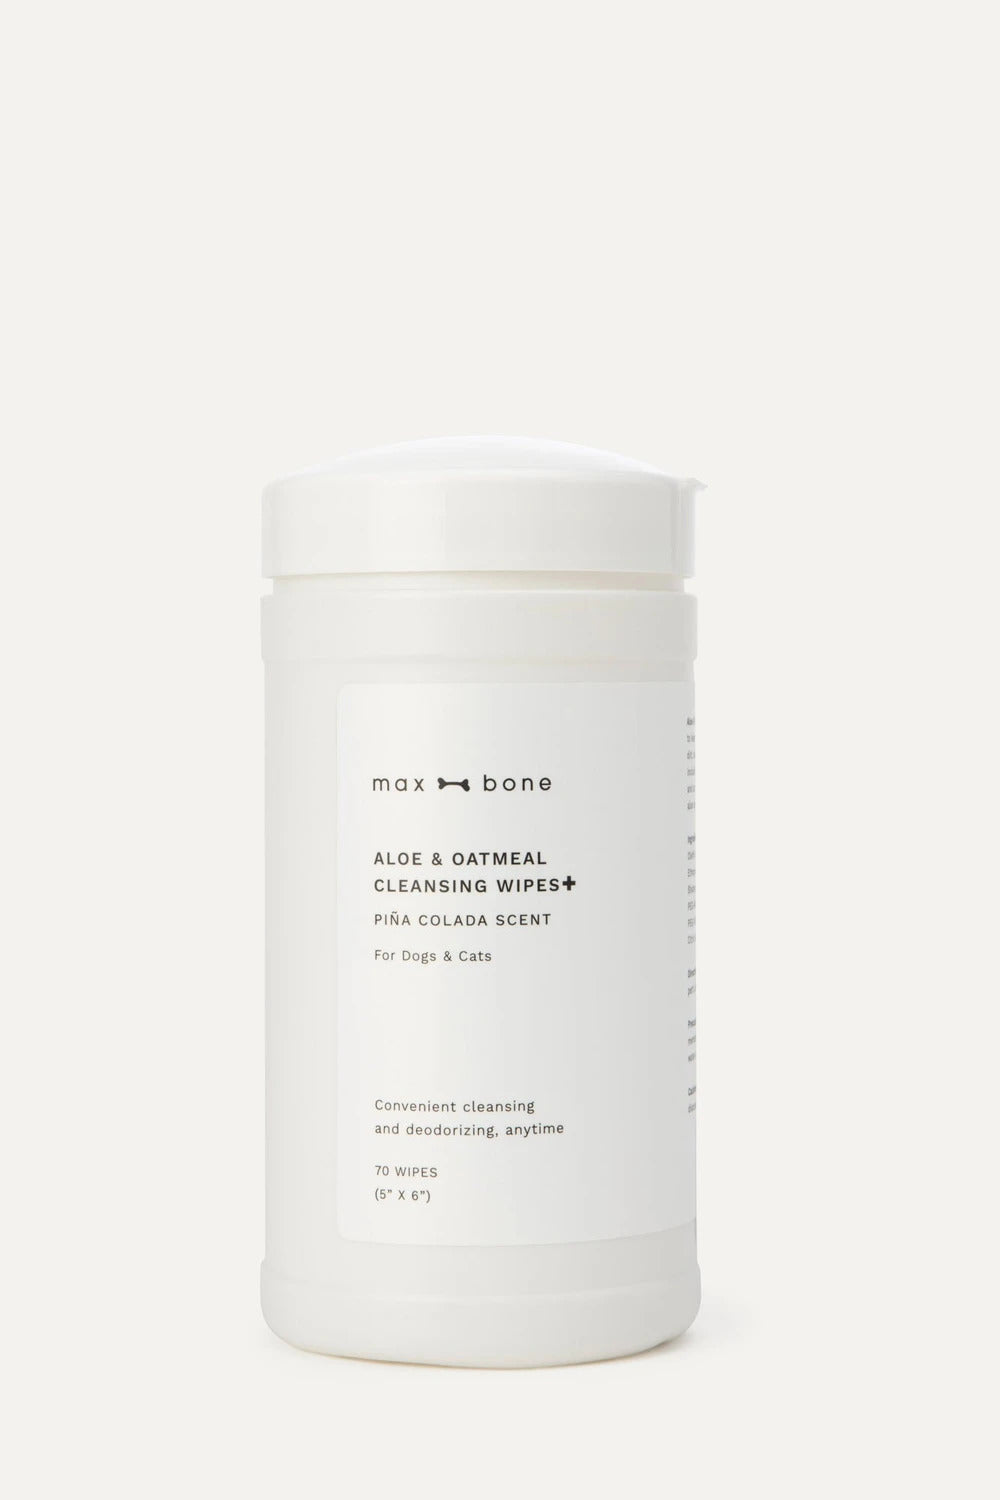 Max Bone - Aloe & Oatmeal Cleansing Wipes